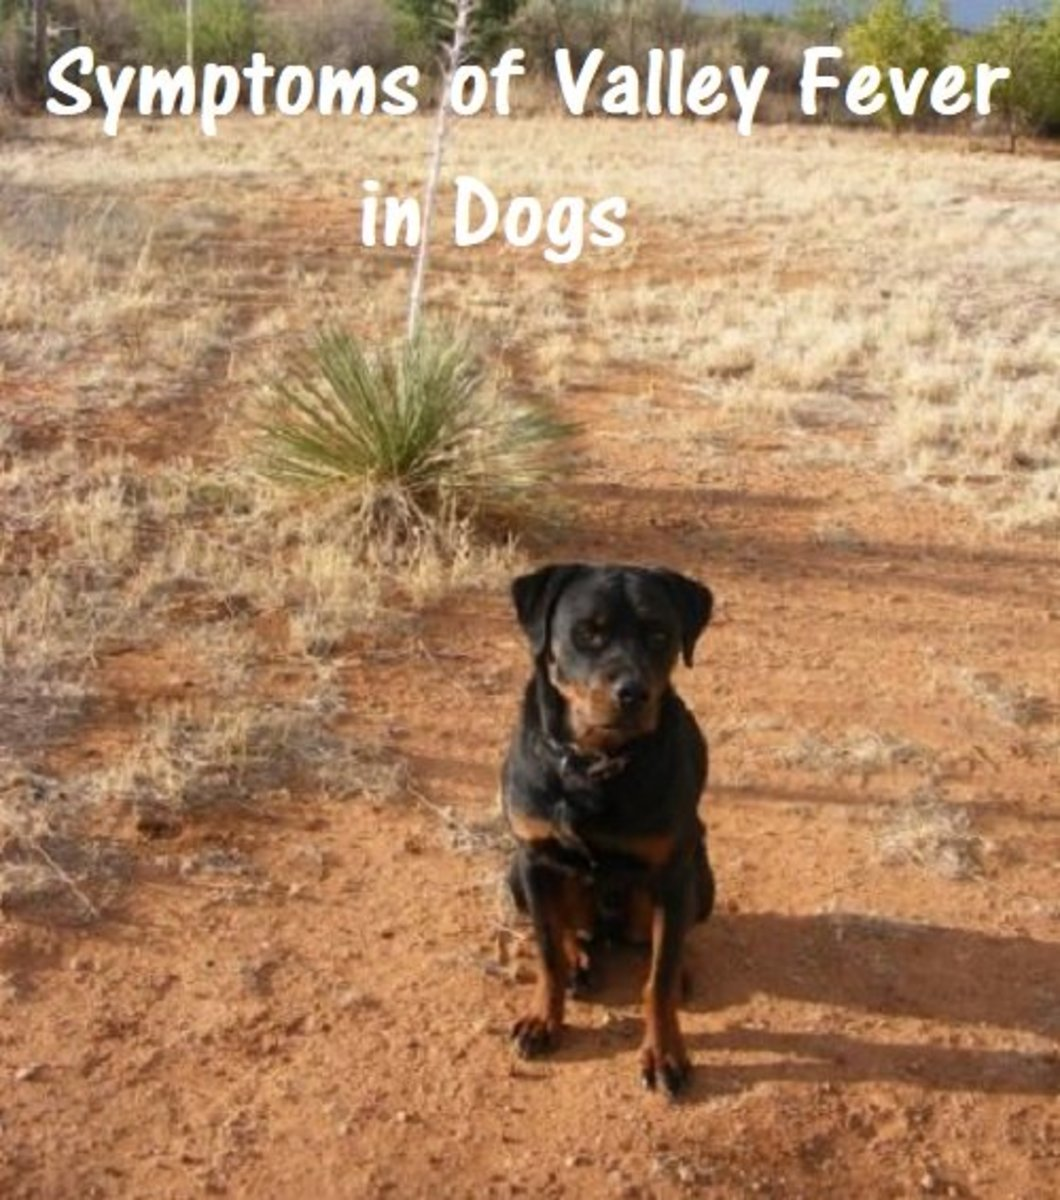 Dogs who live in the Southwestern United States and Mexico can be at risk for Valley Fever